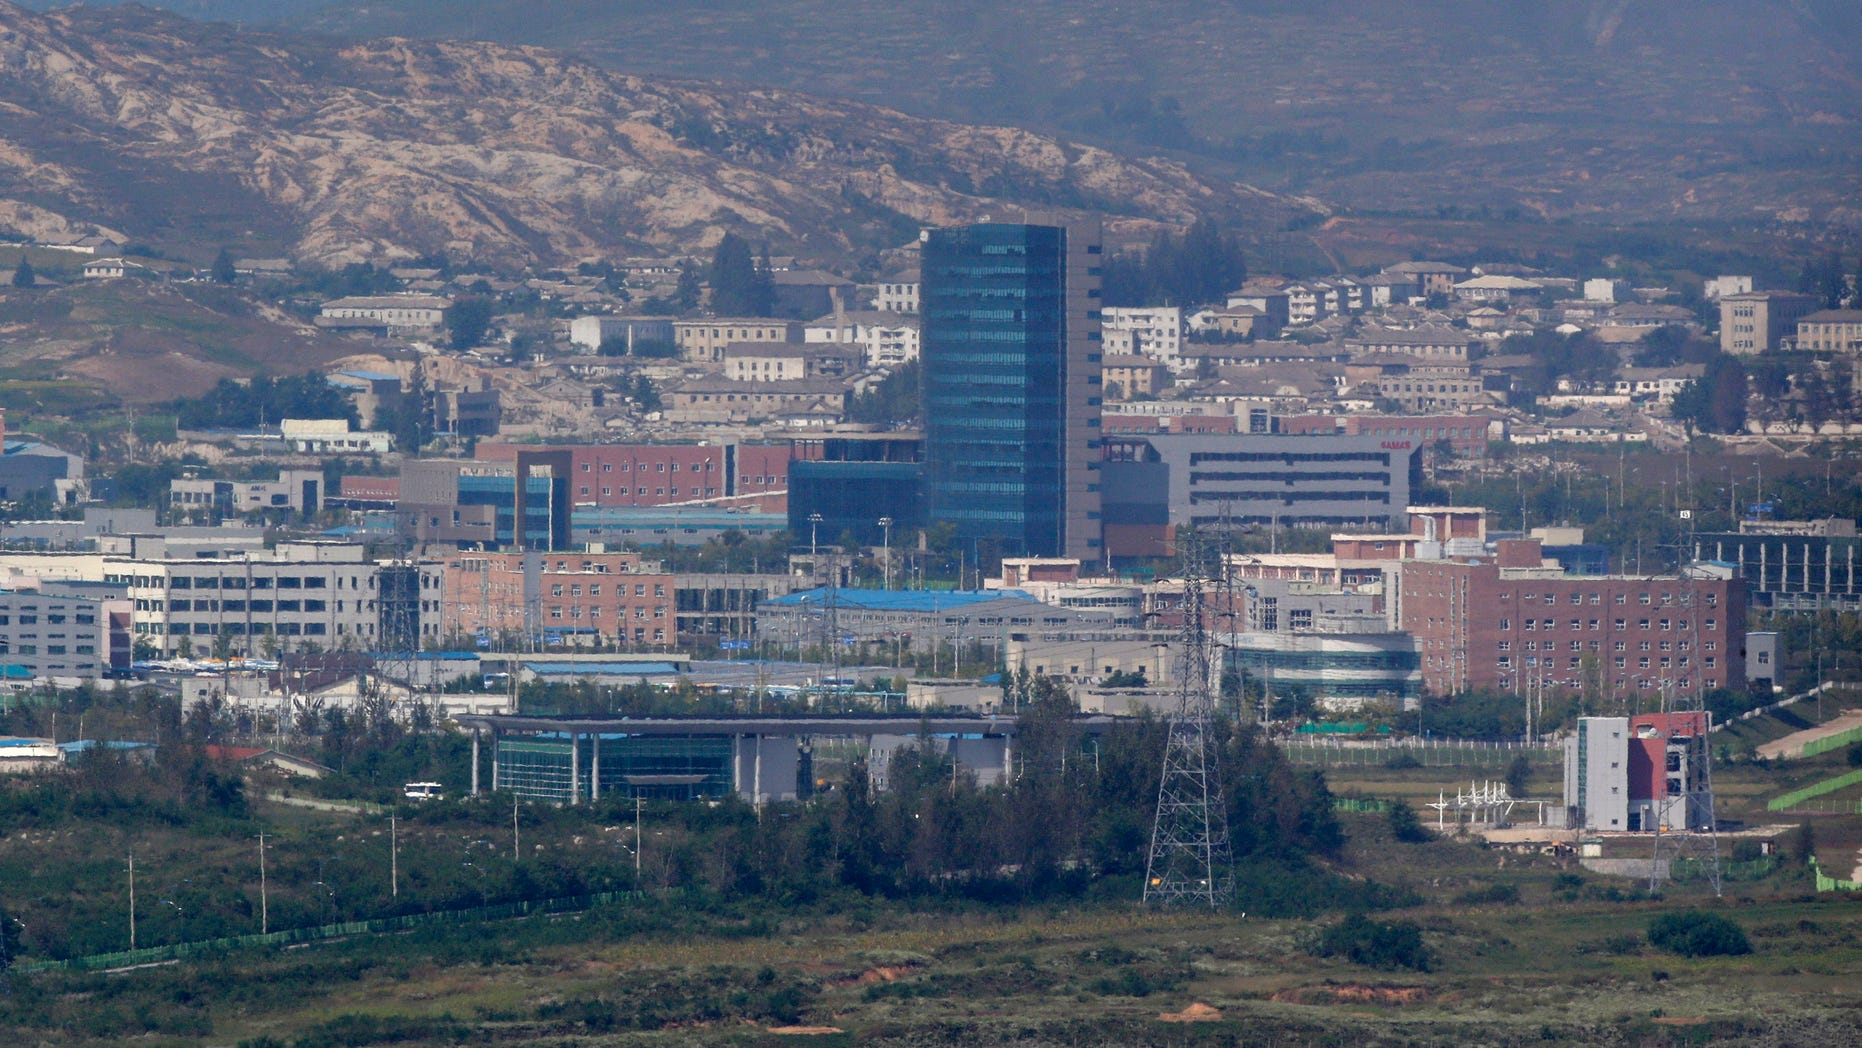 FILE - This Sept. 25, 2013 file photo shows the Kaesong industrial complex, whish is seen from the Dora Observation Post in Paju near the border village of Panmunjom, which has separated the two Koreas since the Korean War, in Paju, north of Seoul, South Korea. South Korean lawmakers will tour the jointly-run factory park in North Korea next week, officials said Thursday, Oct. 24, 2013. Pyongyang approved the visit next Wednesday by 24 National Assembly members and their aides, Ministry of Unification spokeswoman Park Sujin said. (AP Photo/Lee Jin-man, File)